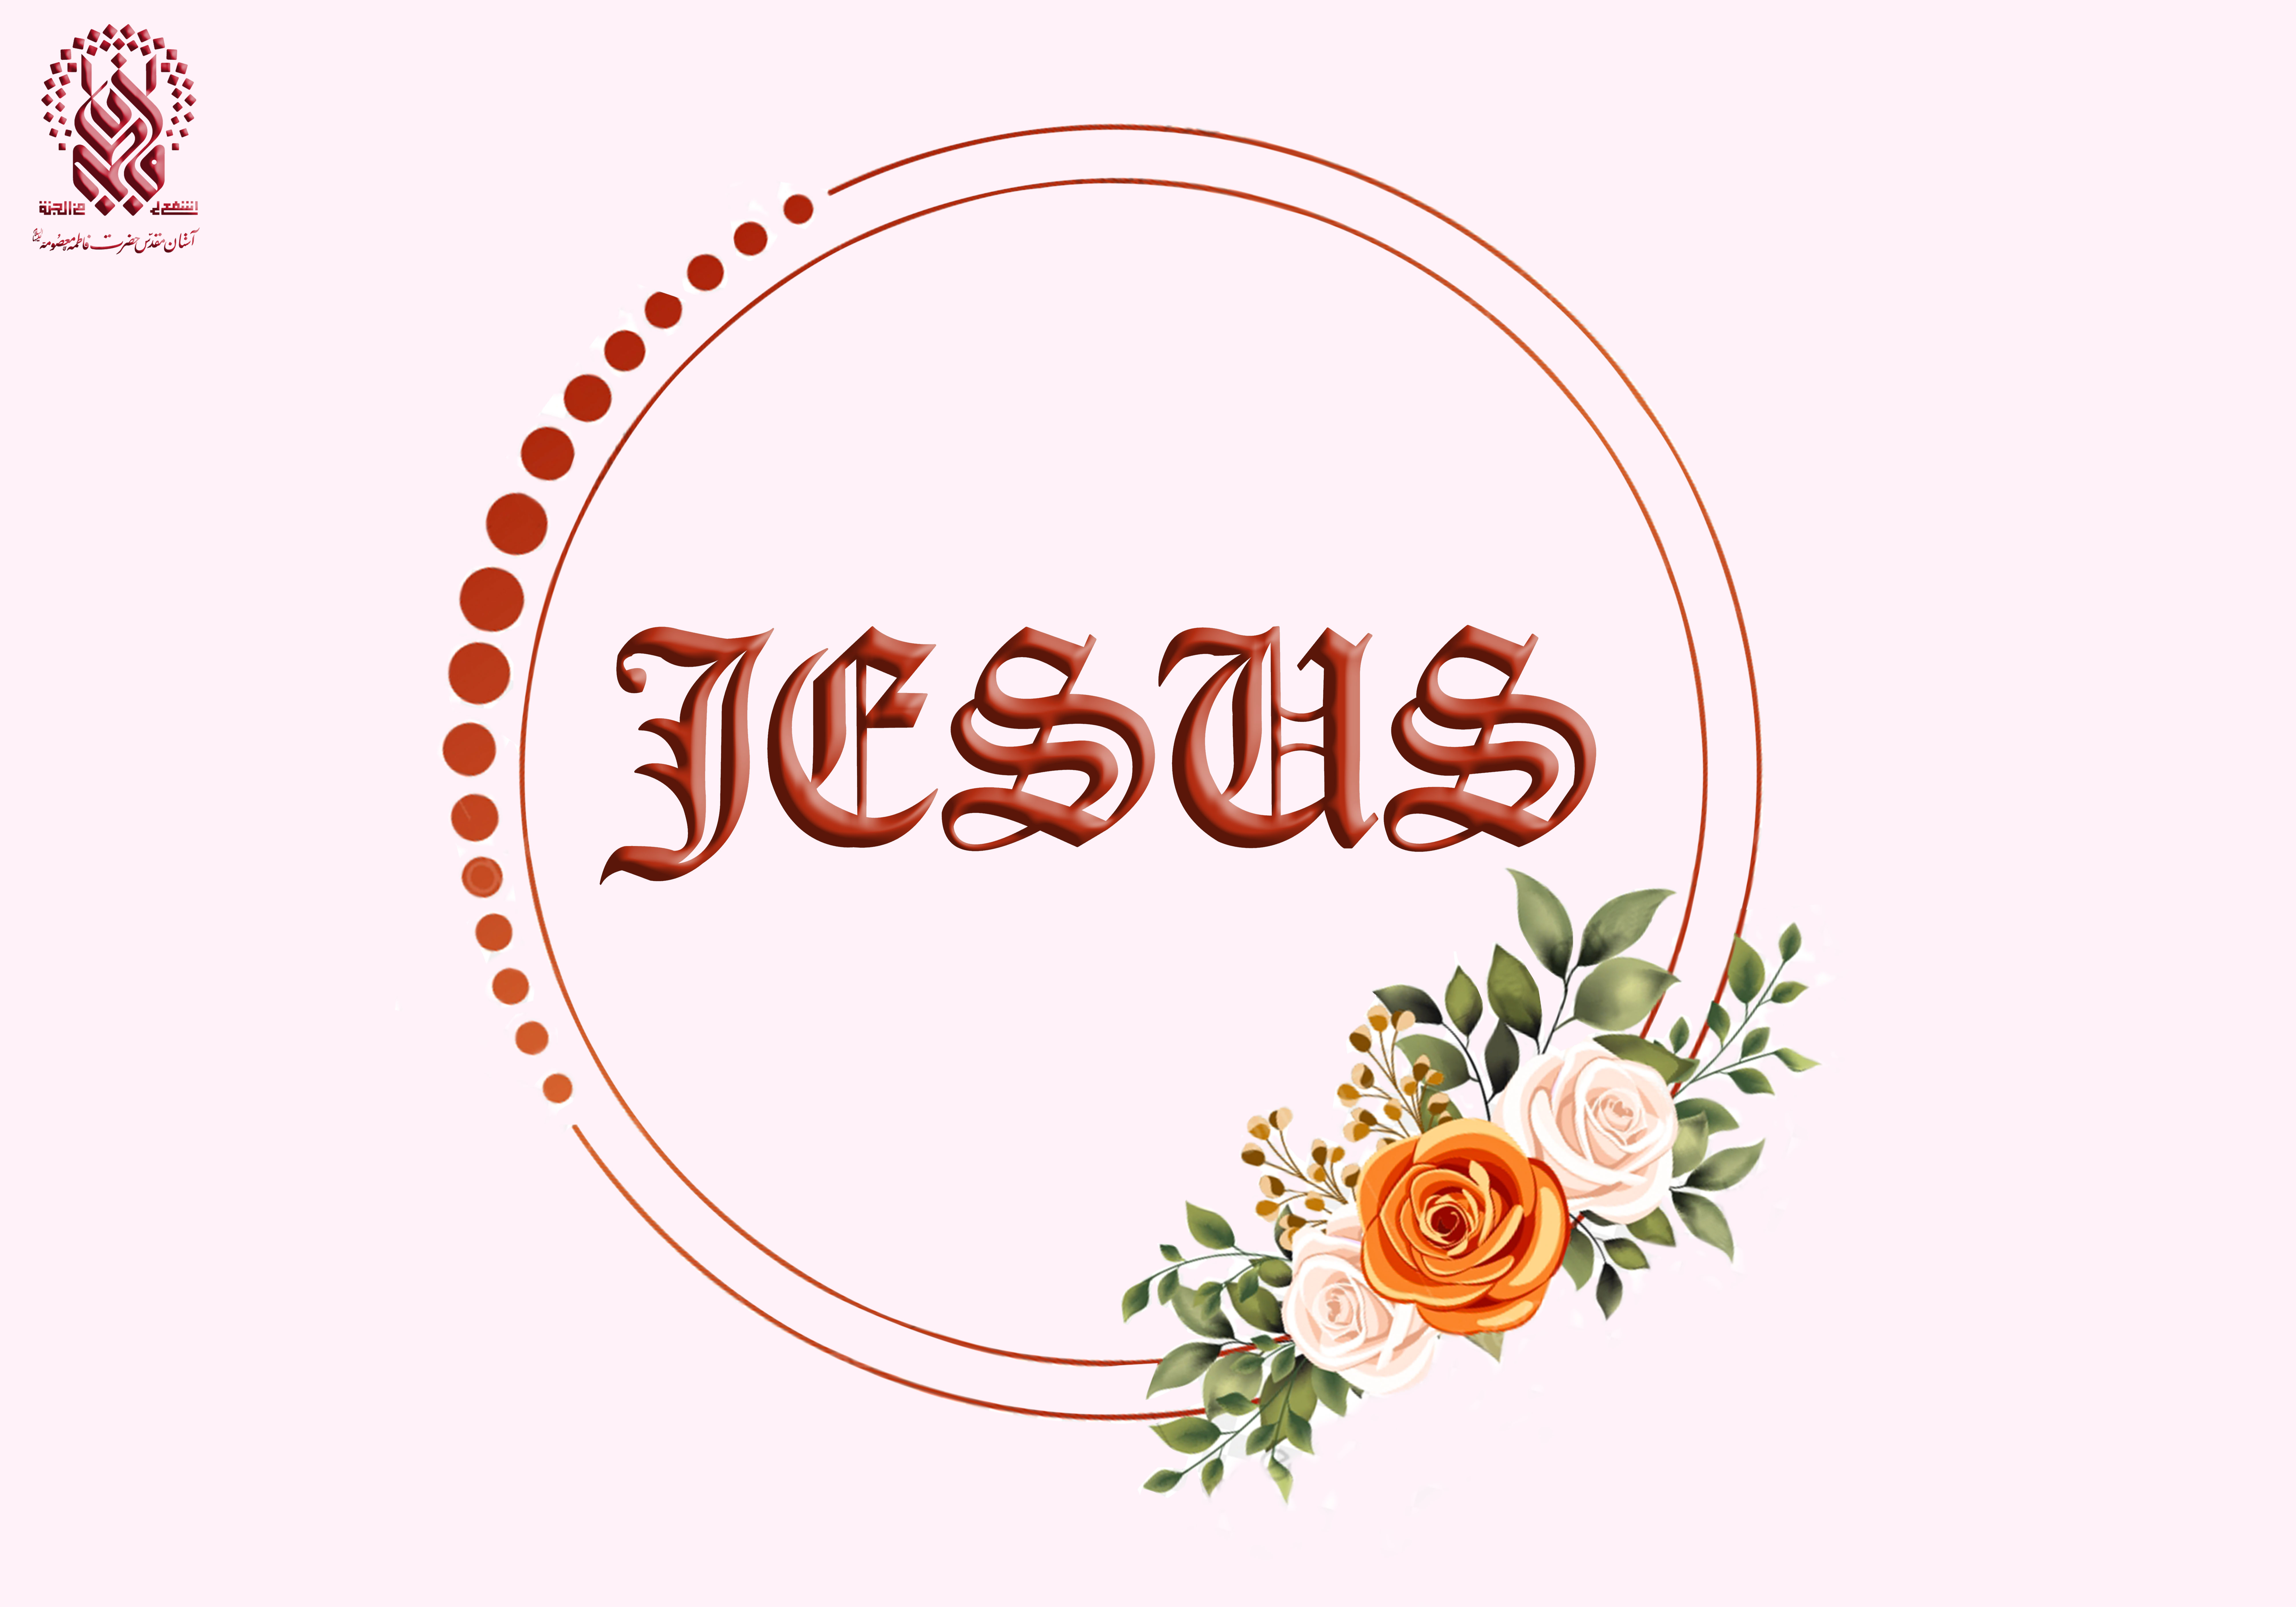 Jesus, the son of Mary